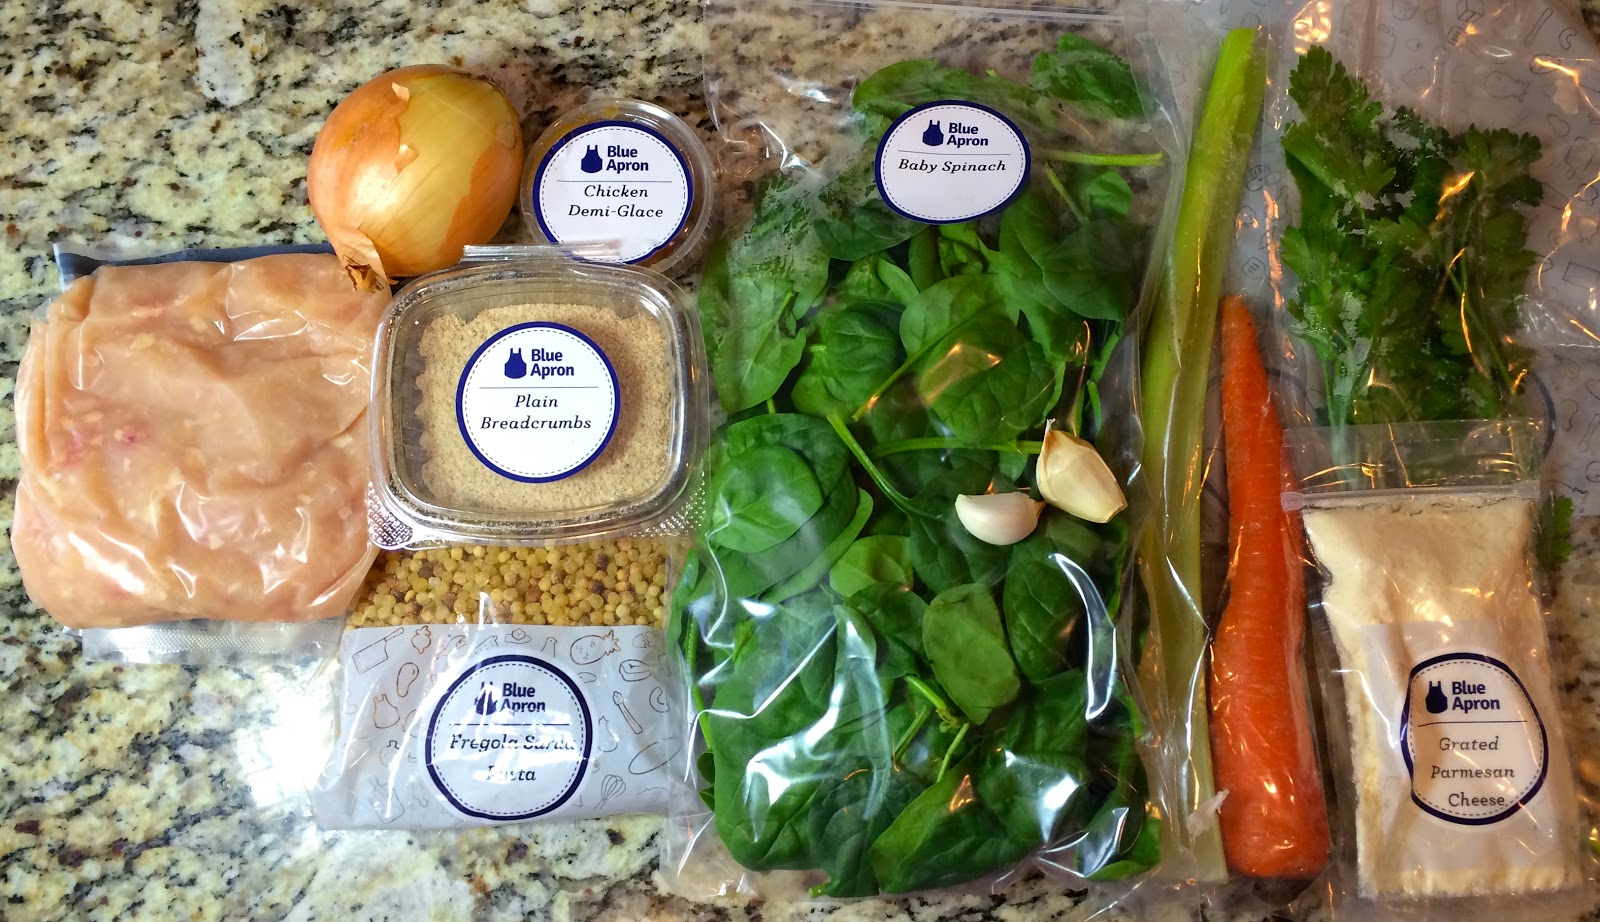 Blue apron salem